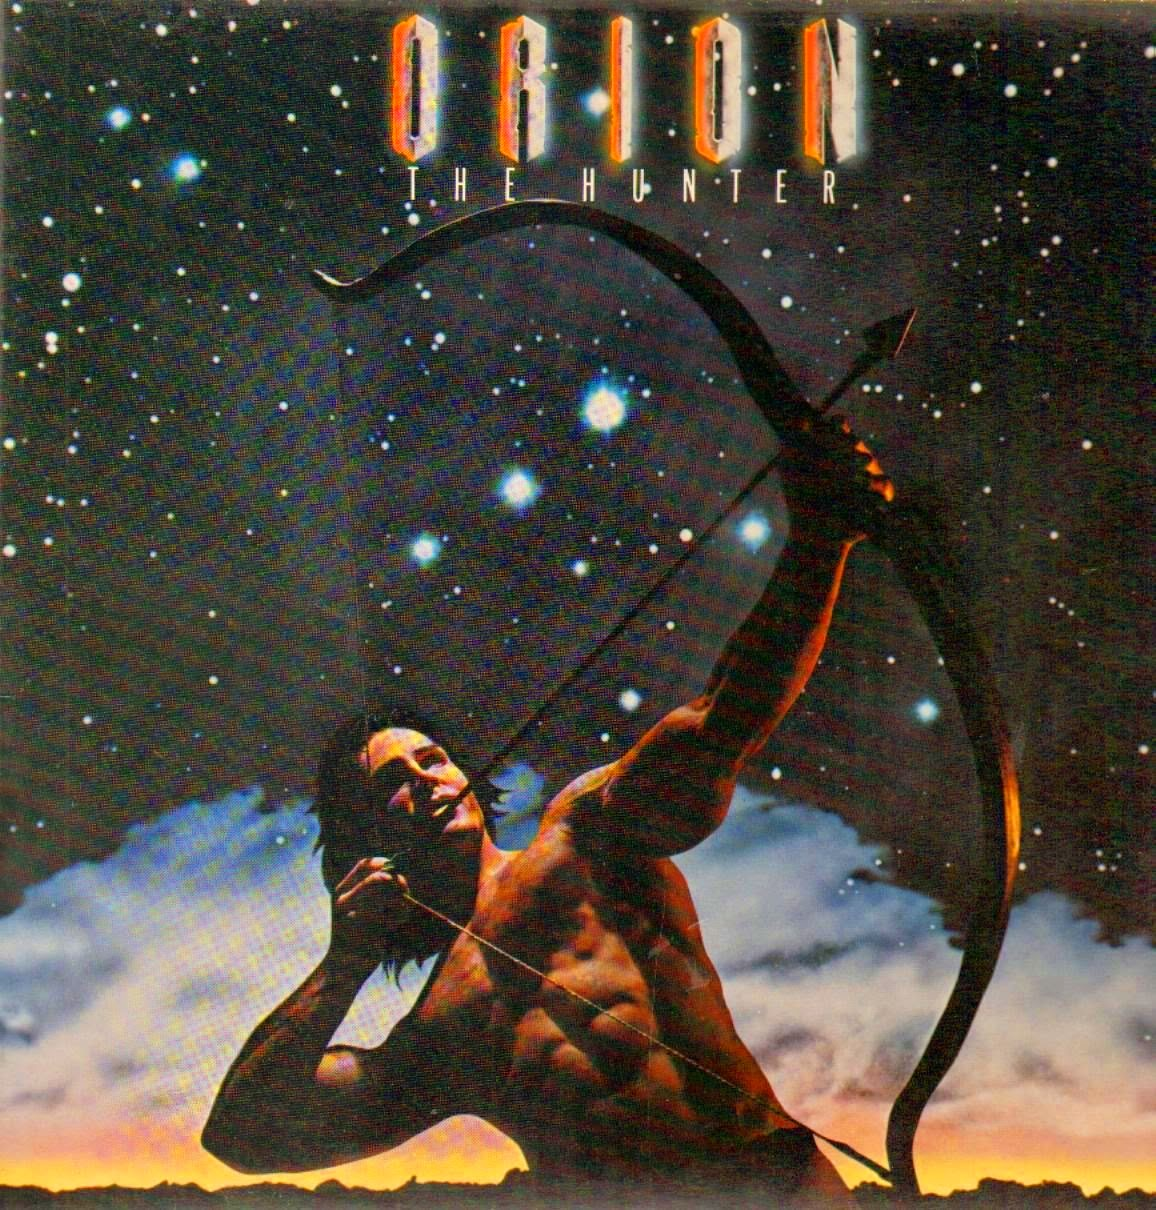 Orion the Hunter st 1984